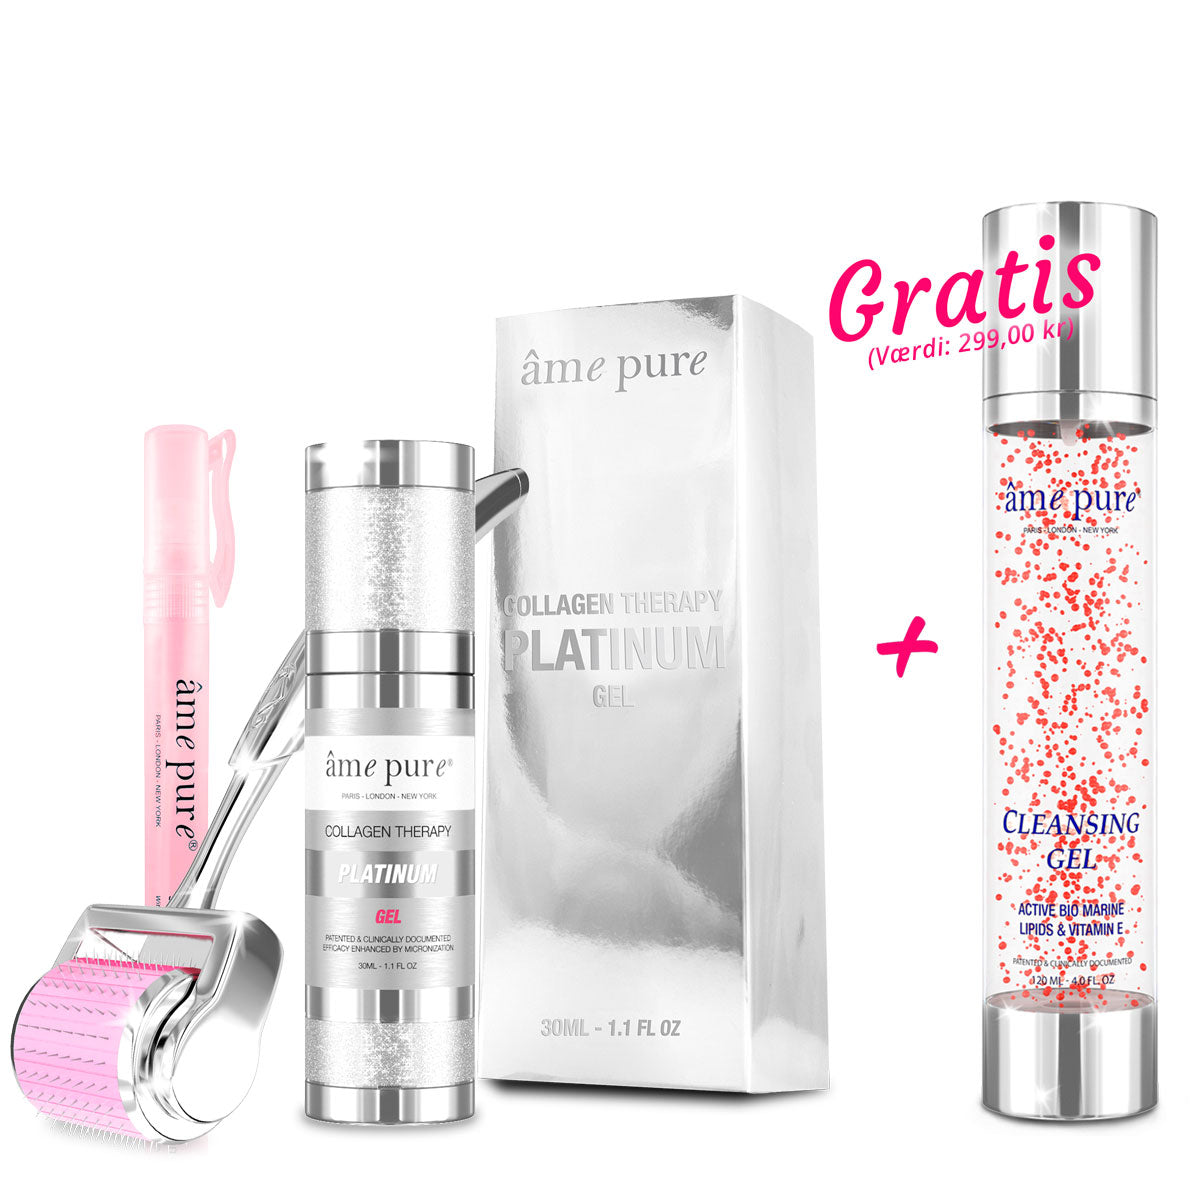 CIT Face Roller PLATINUM + GRATIS Cleansing Gel